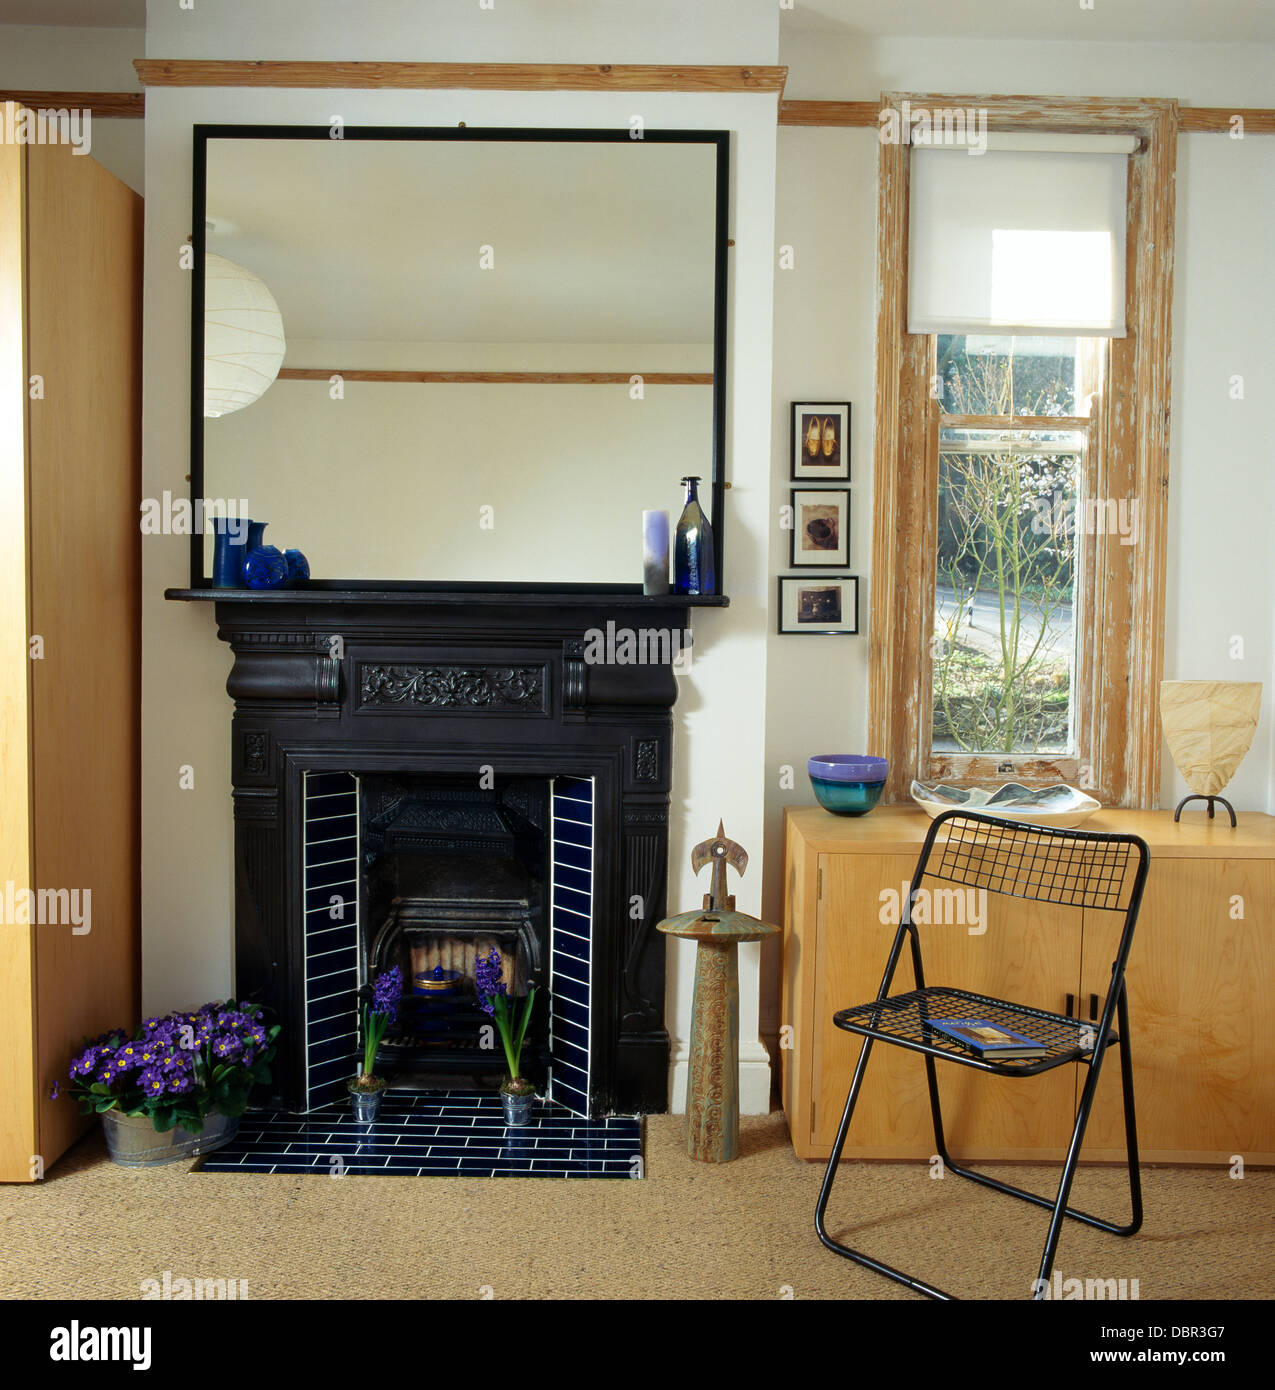 Large Mirror Above Black Cast Iron Edwardian Fireplace In Modern